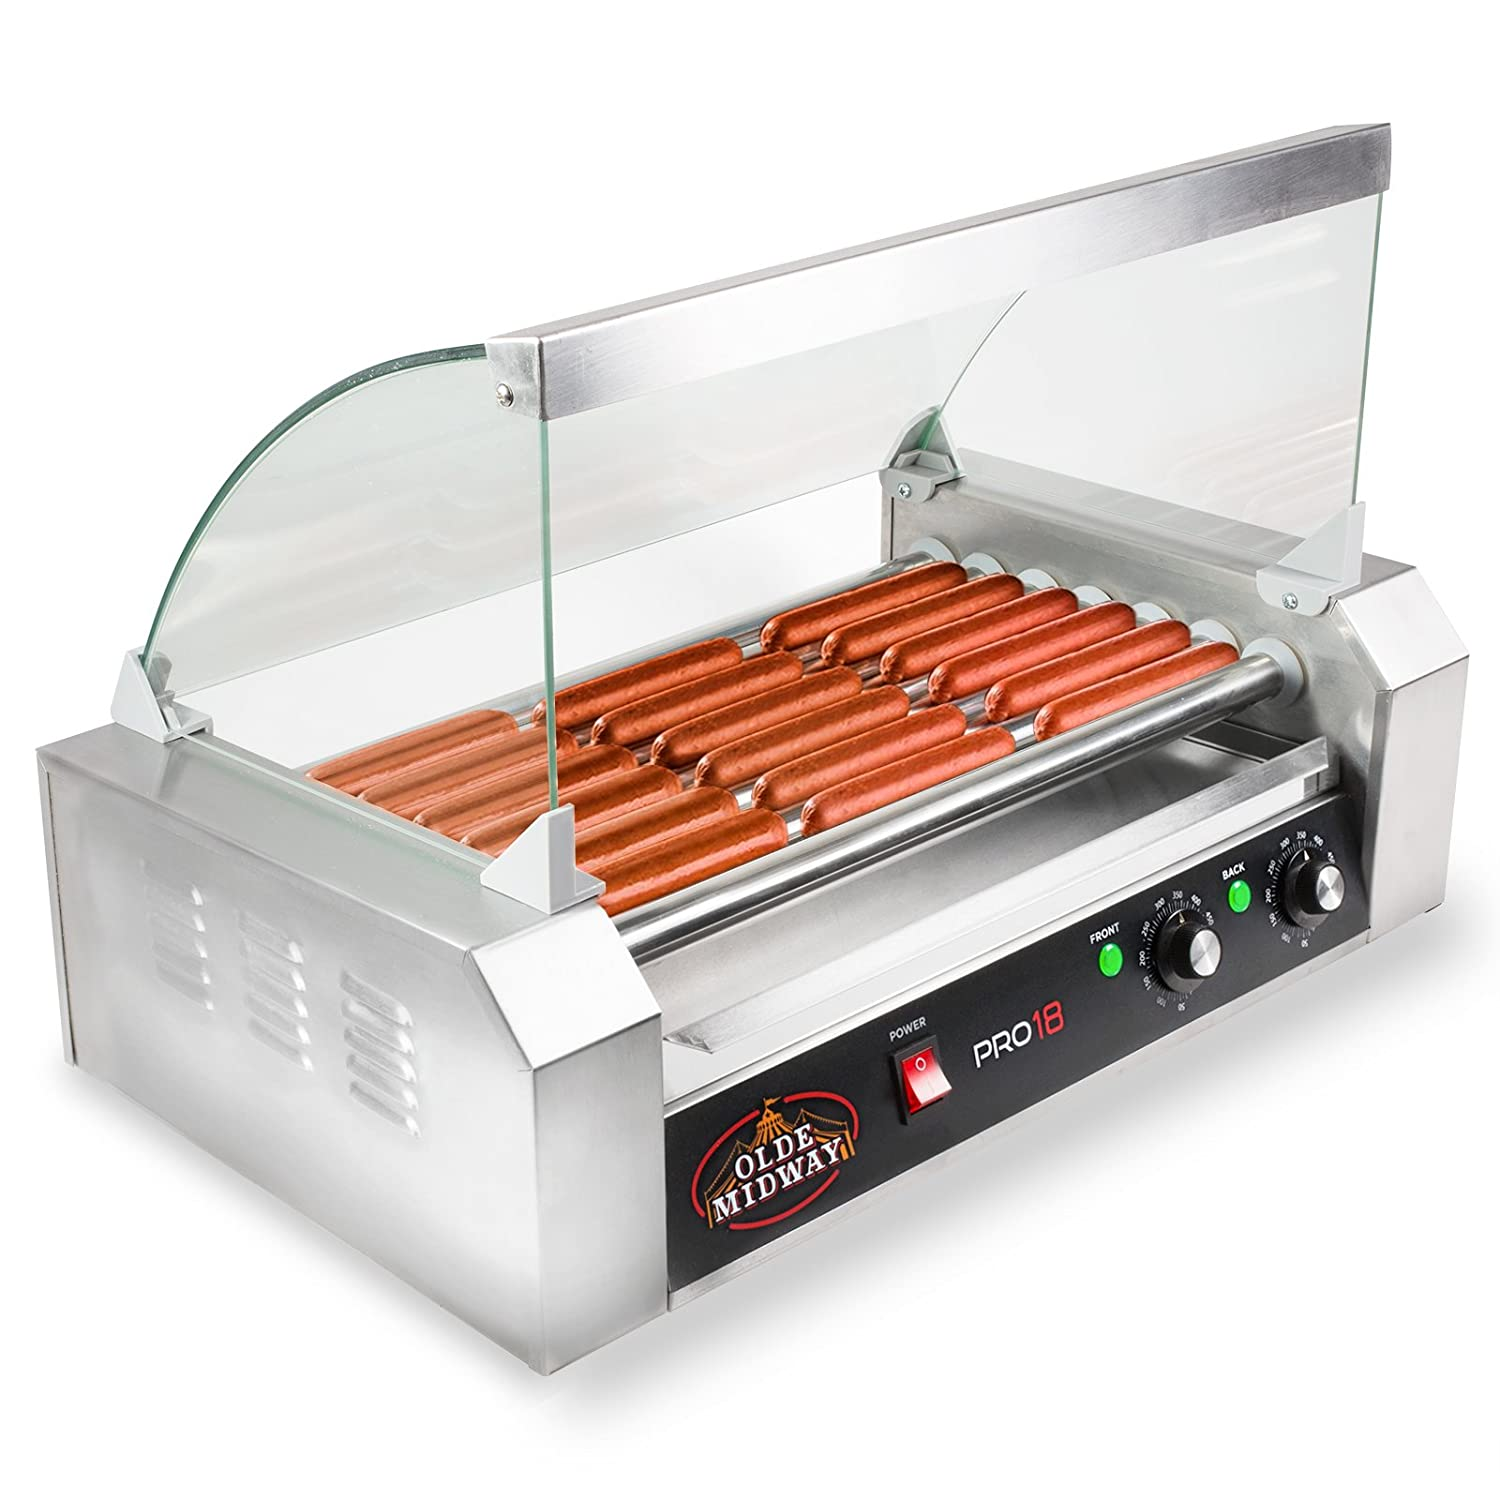 Olde Midway Electric 18 Hot Dog 7 Roller Grill Cooker Machine 900-Watt with Cover - Commercial Grade